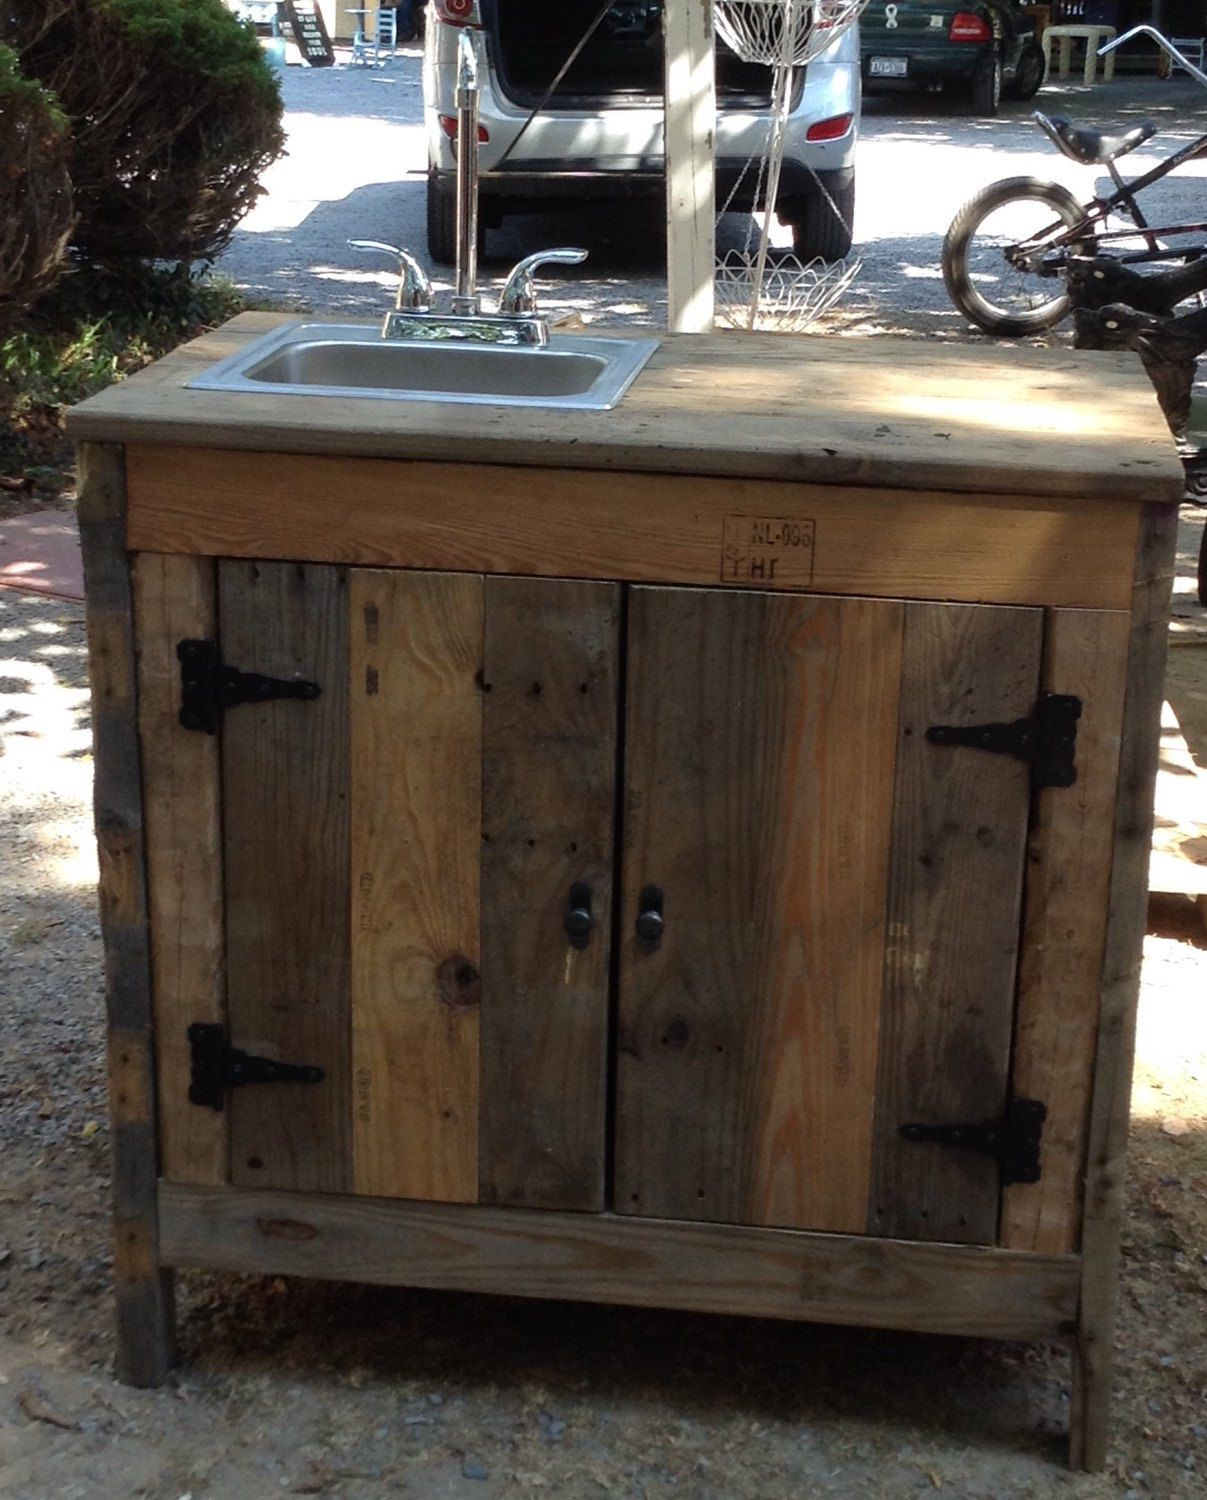 Sink Cabinet For Outdoor Entertainment Area Kitchen Or Bathroom Made With Reclaimed Wood